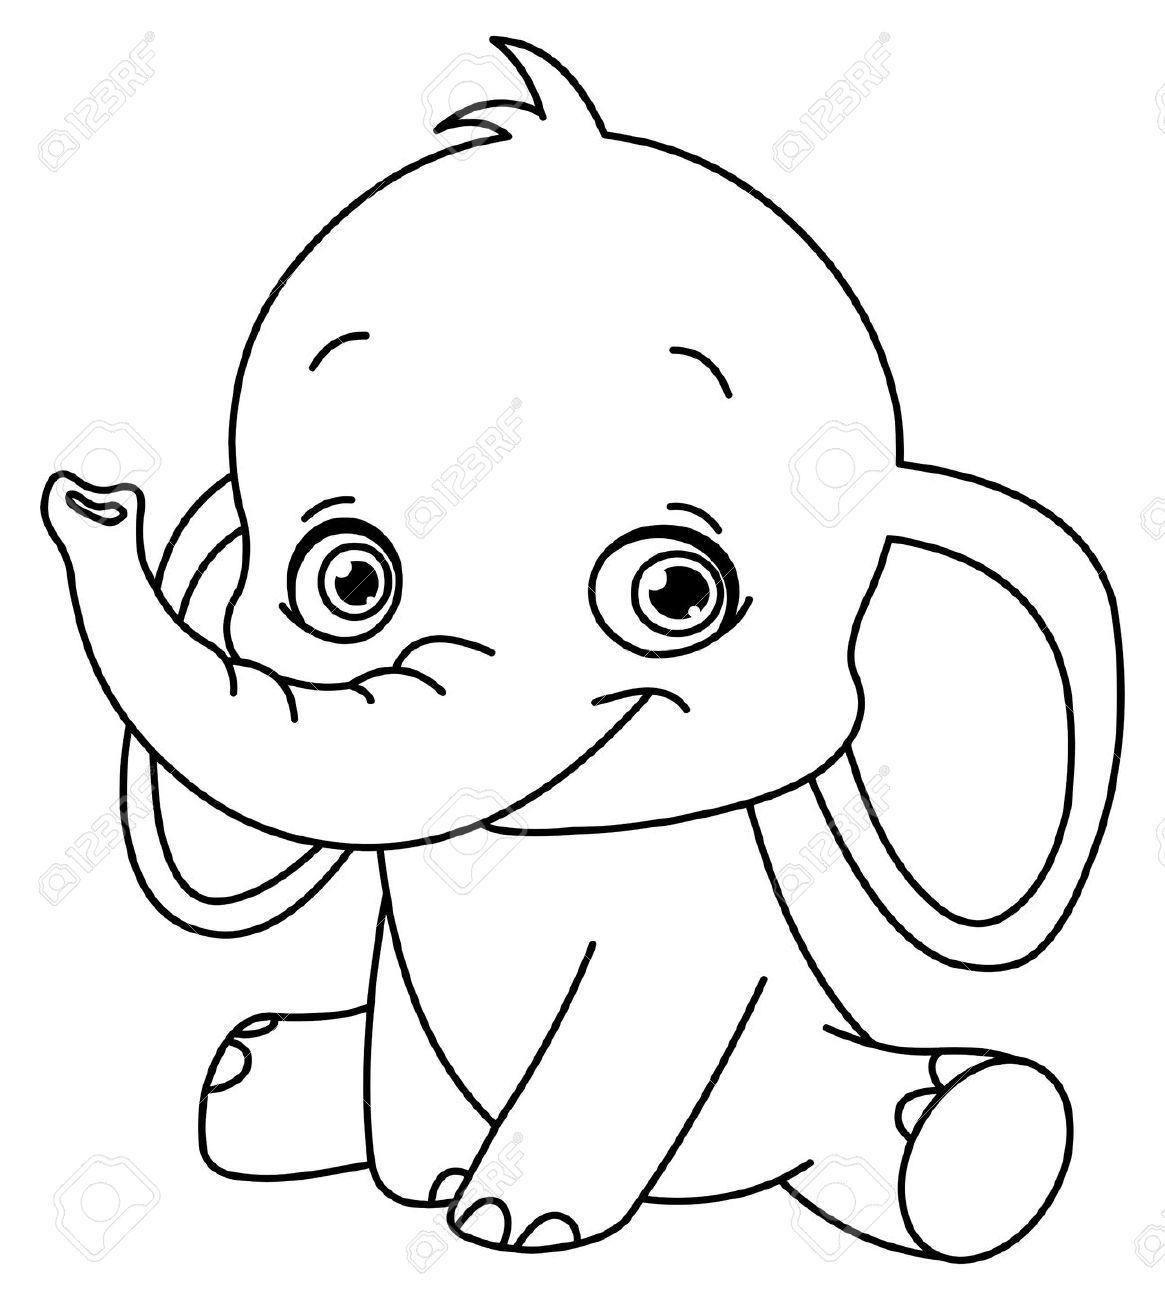 cartoon drawing of elephant - Google Search | Projects to Try ...